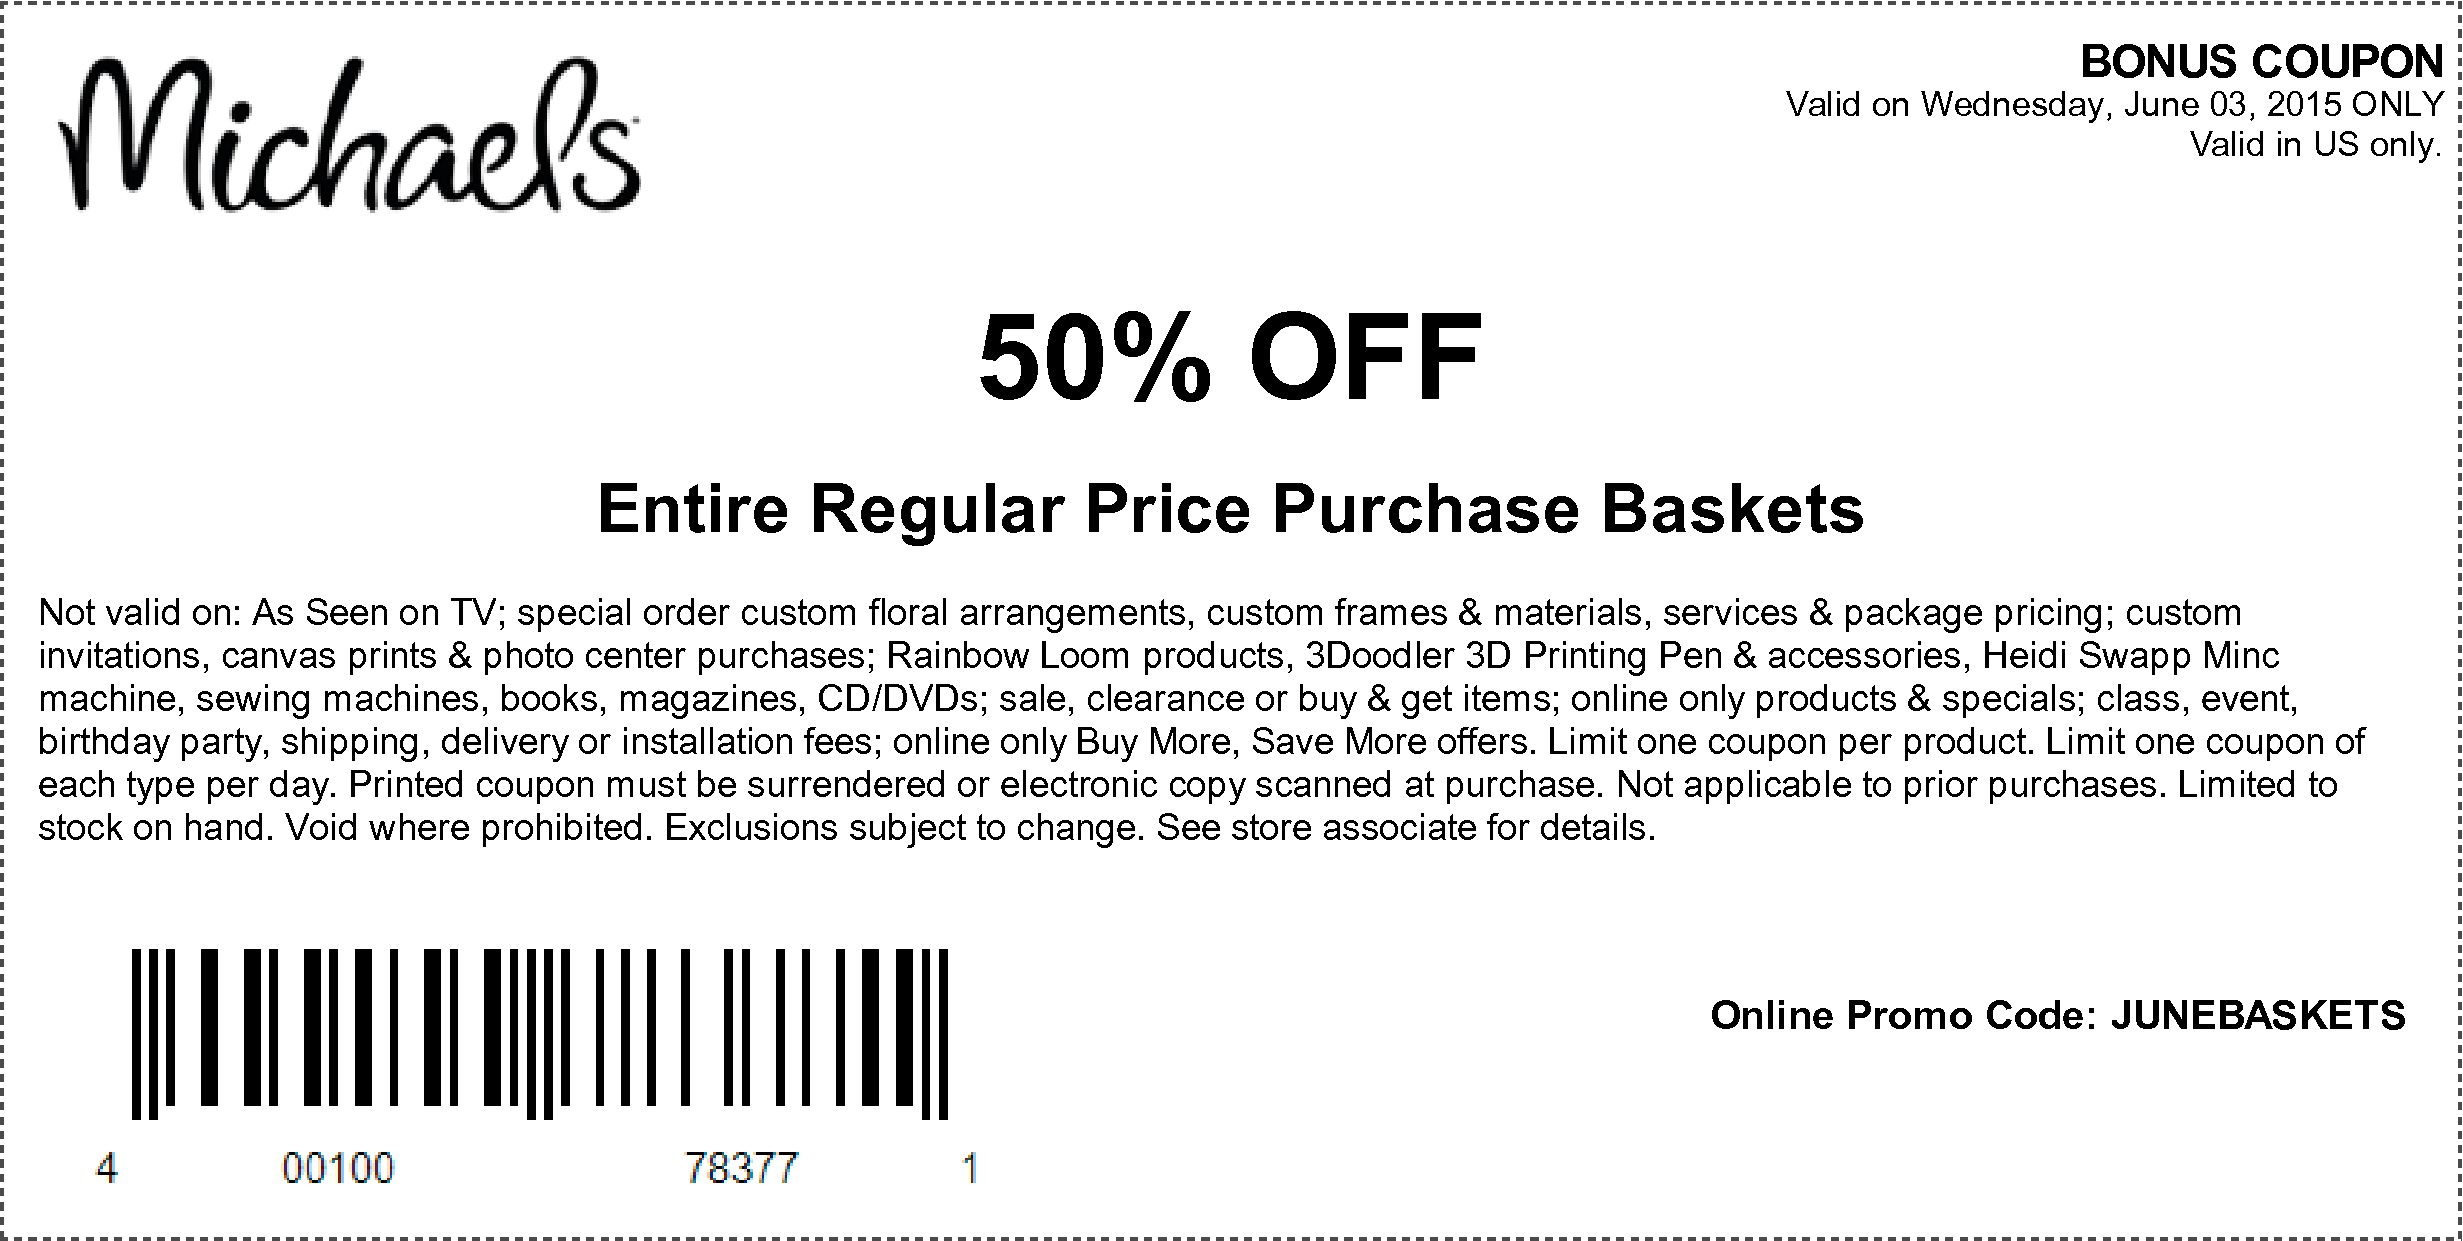 Harmon discount store coupons